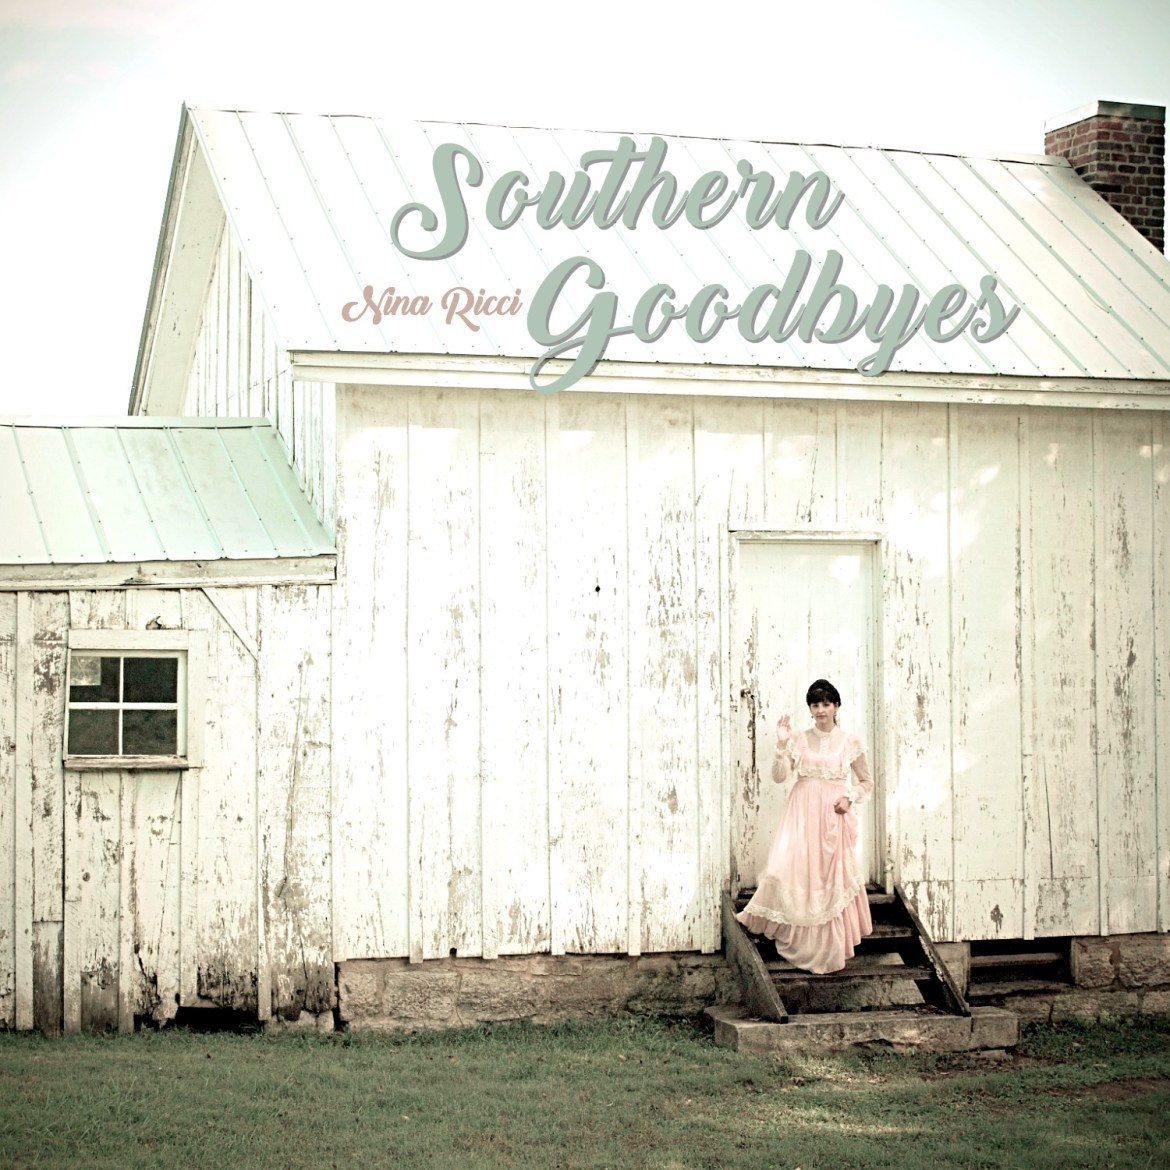 Southern-Goodbyes-cover-photo-Official.jpg